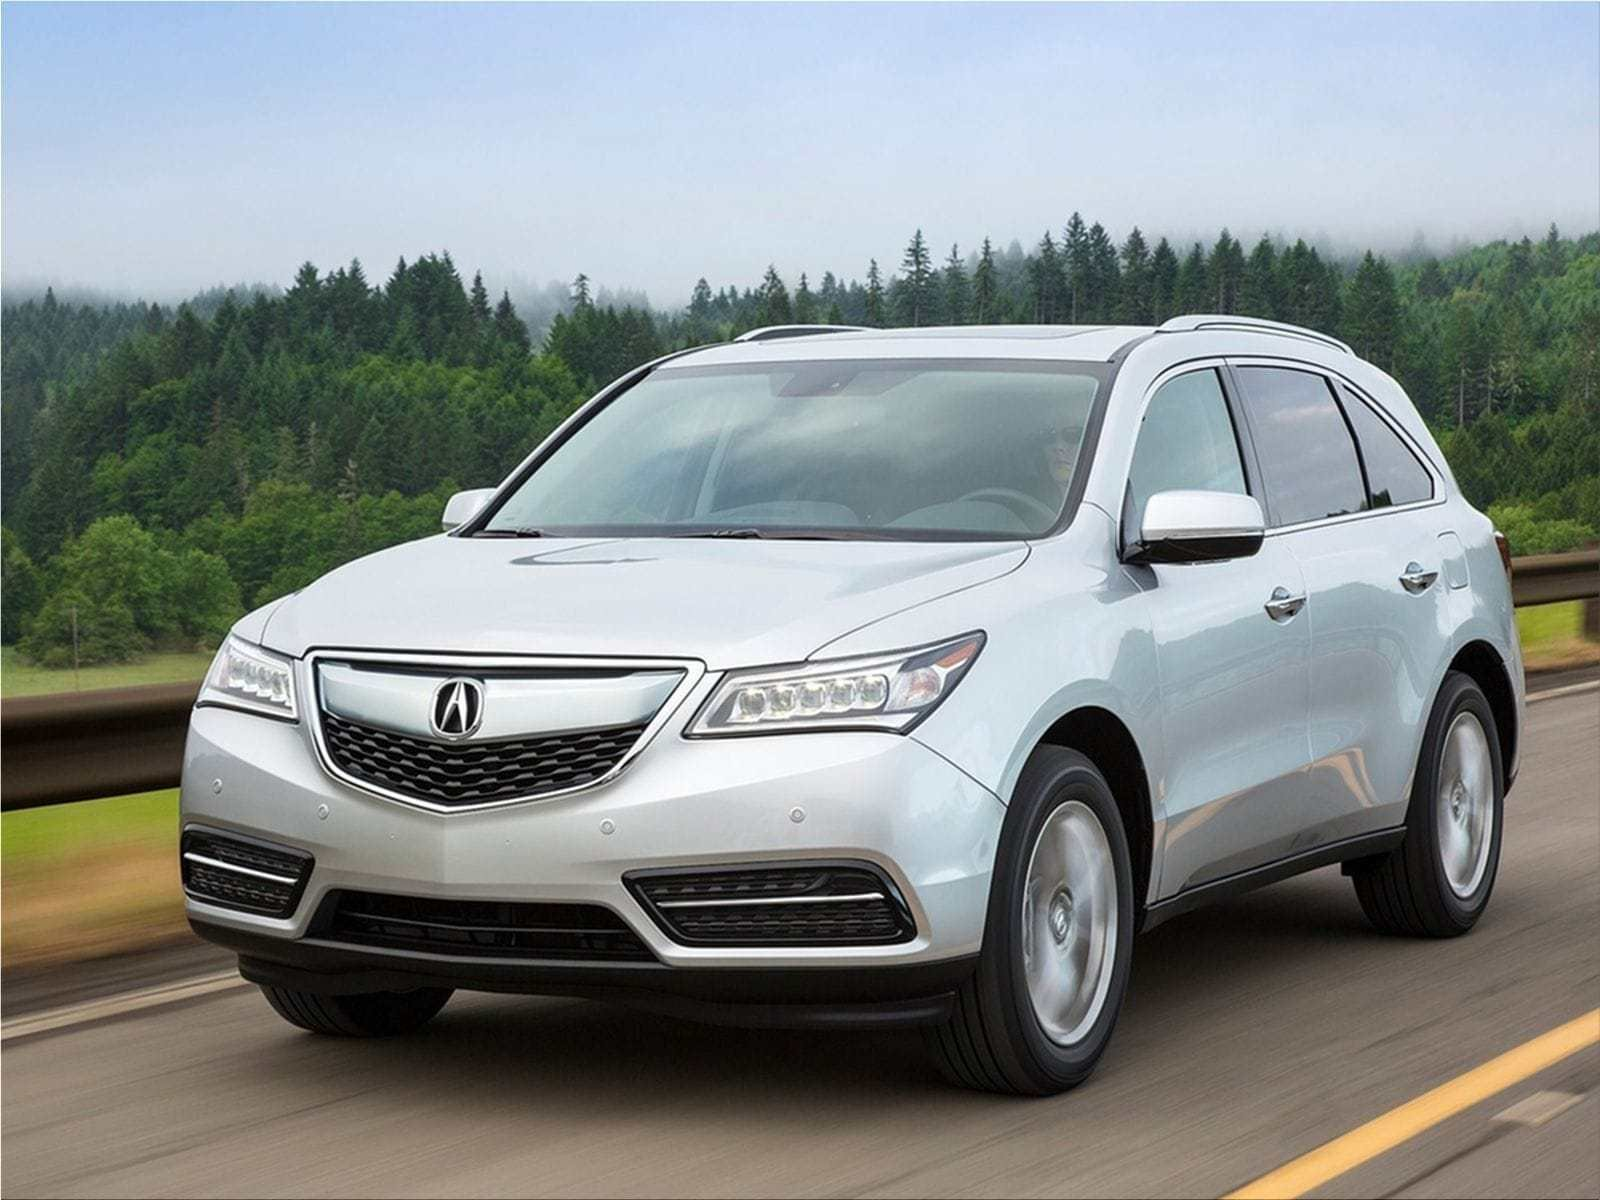 Latest 2014 Acura Mdx Seven Seat Luxury Suv Acura Car Pictures Free Download